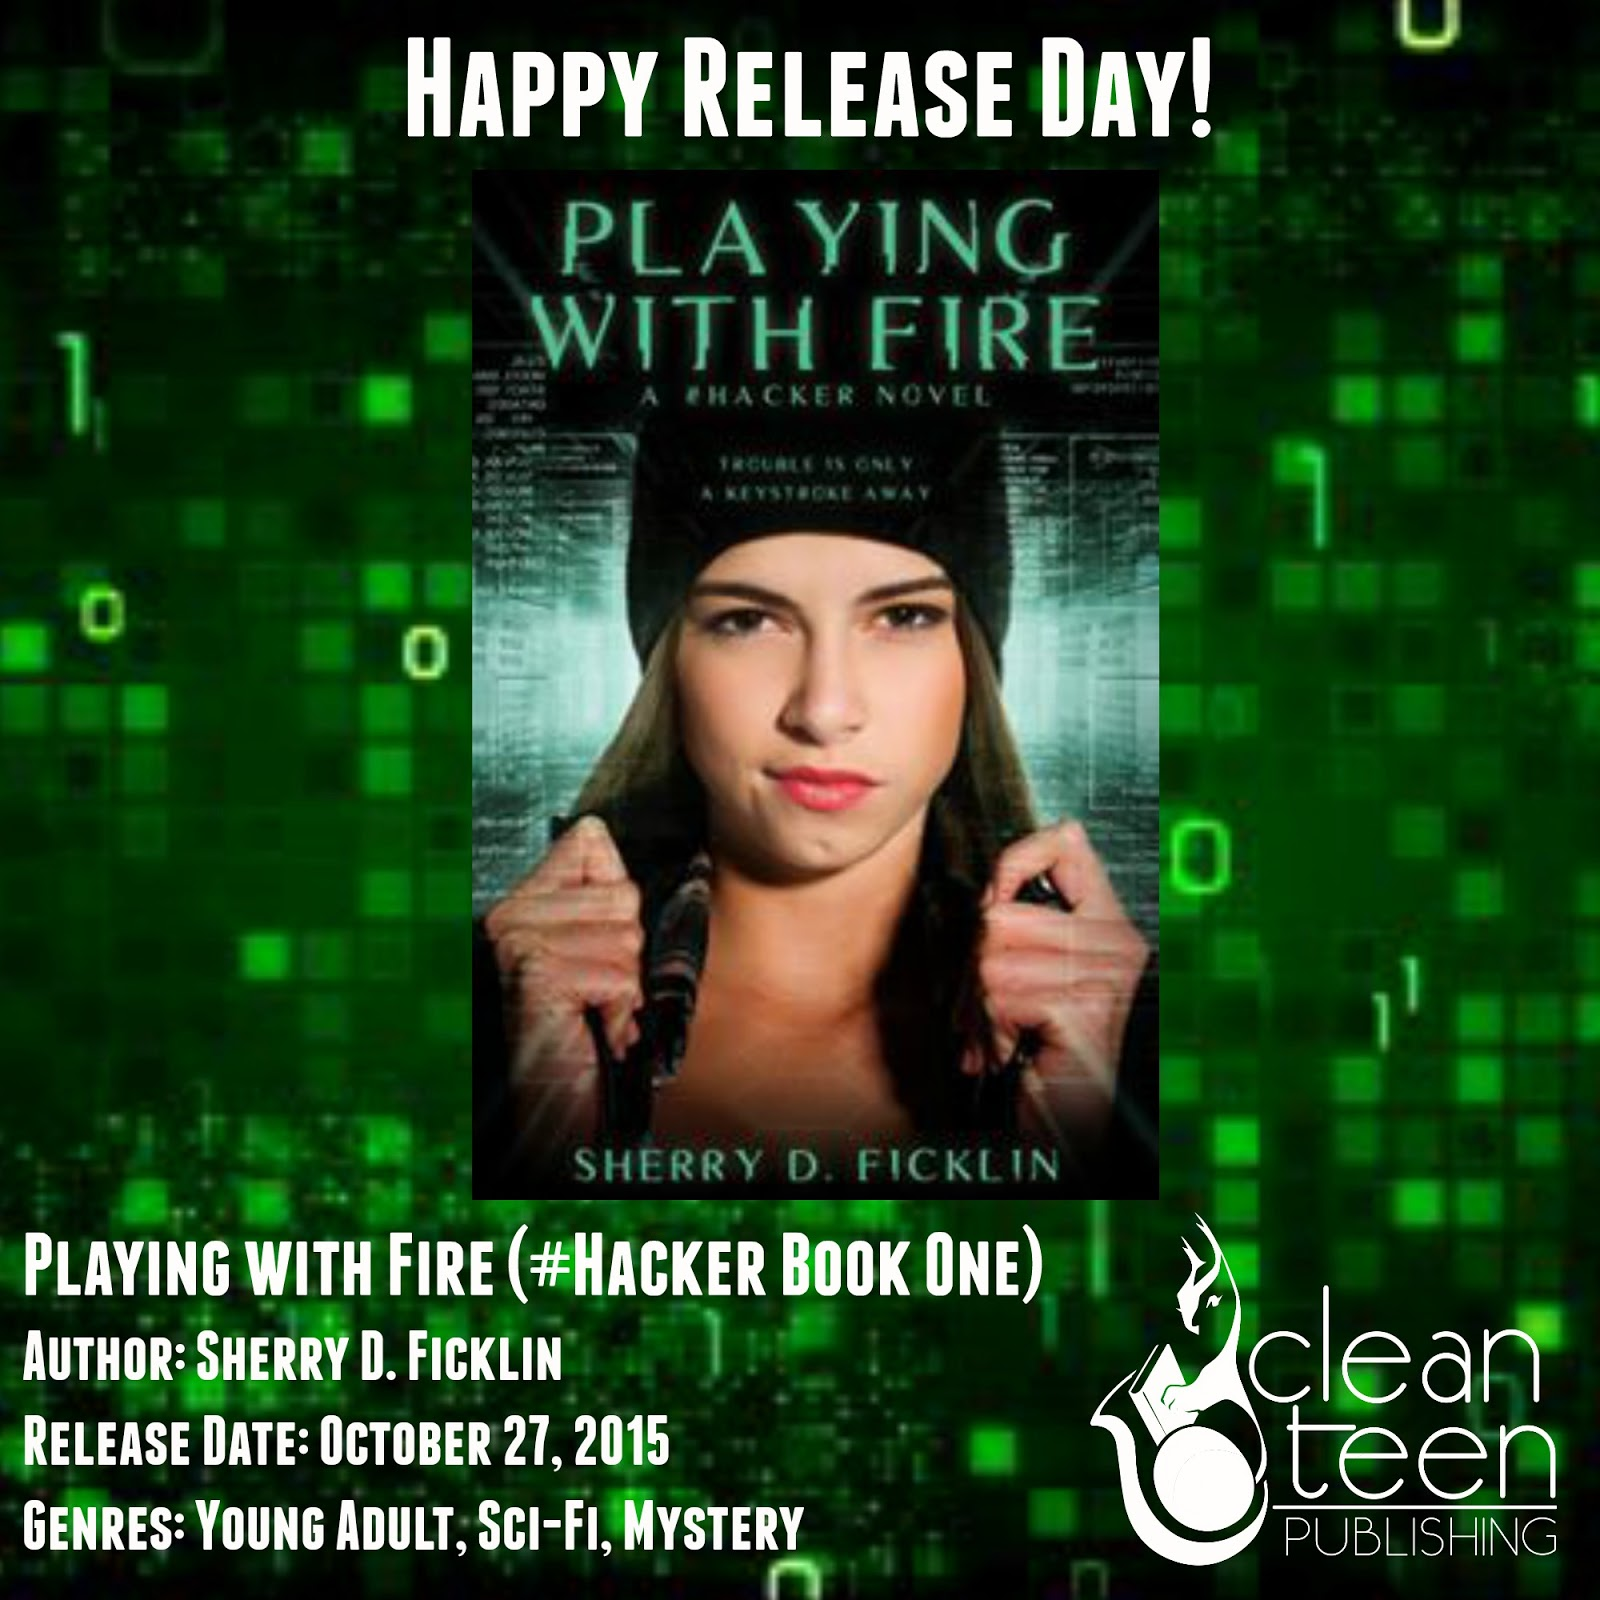 One Guy's Guide to Good Reads: Playing With Fire (Hacker #1